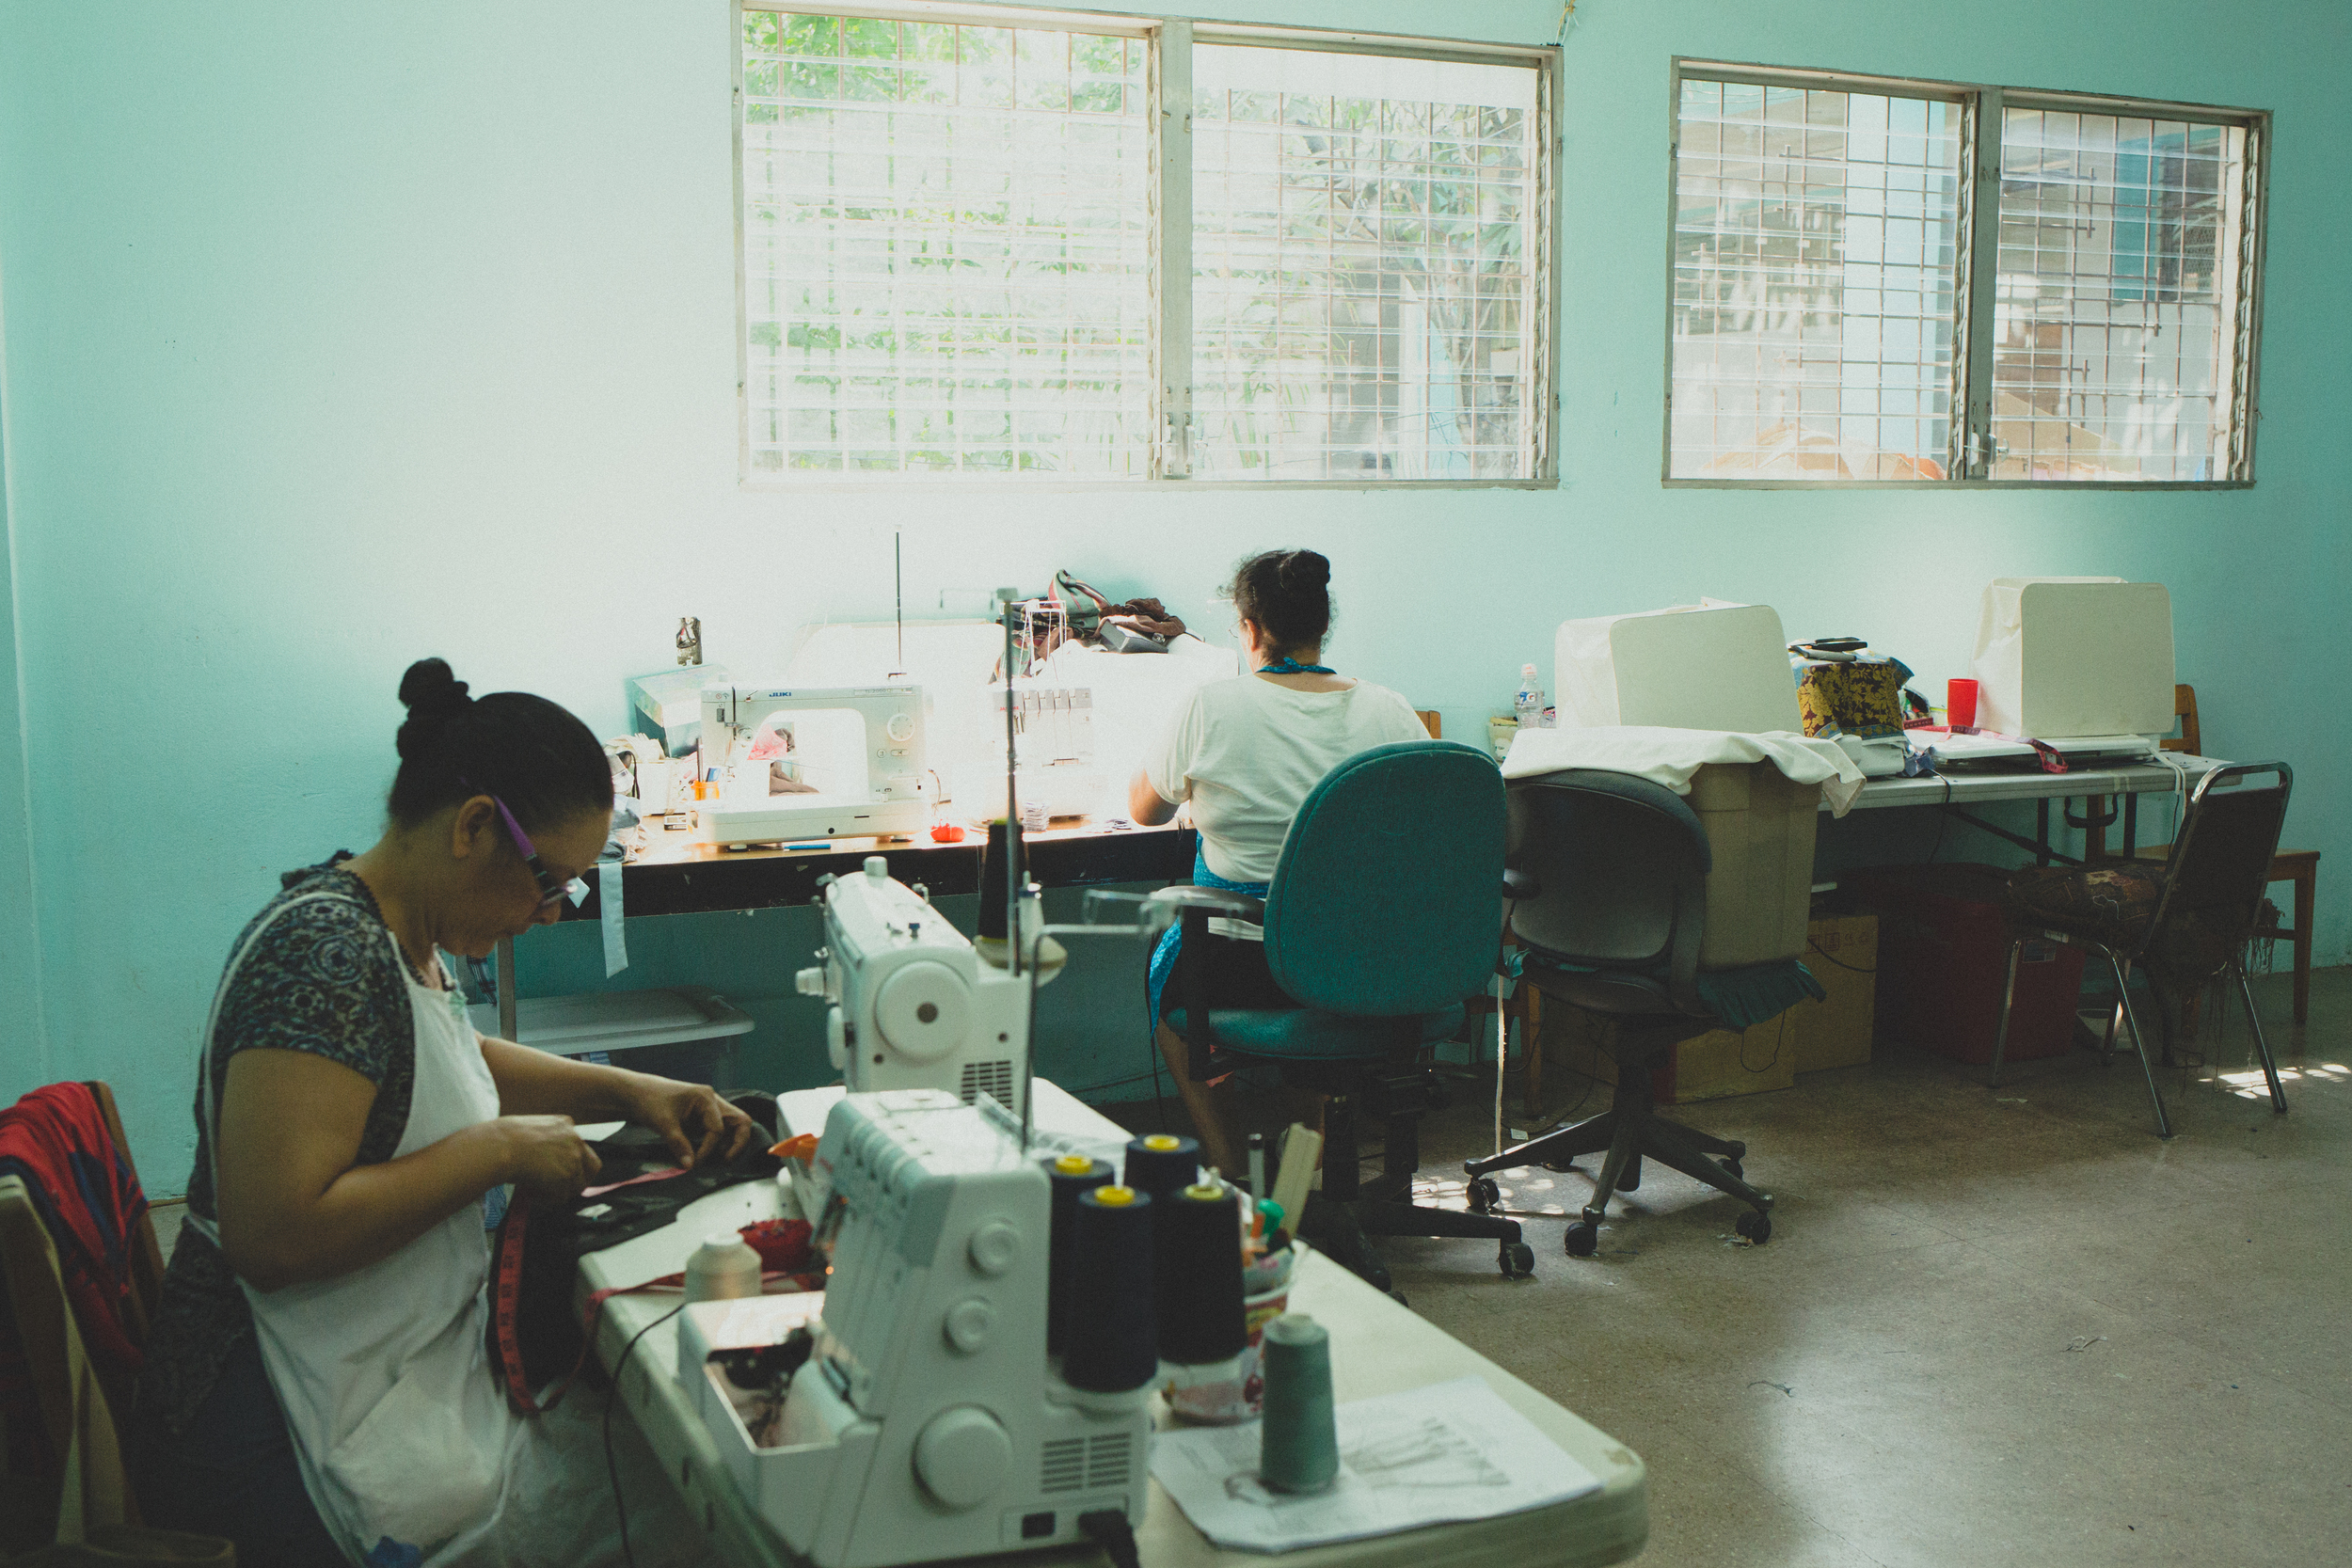 City center sewing classroom